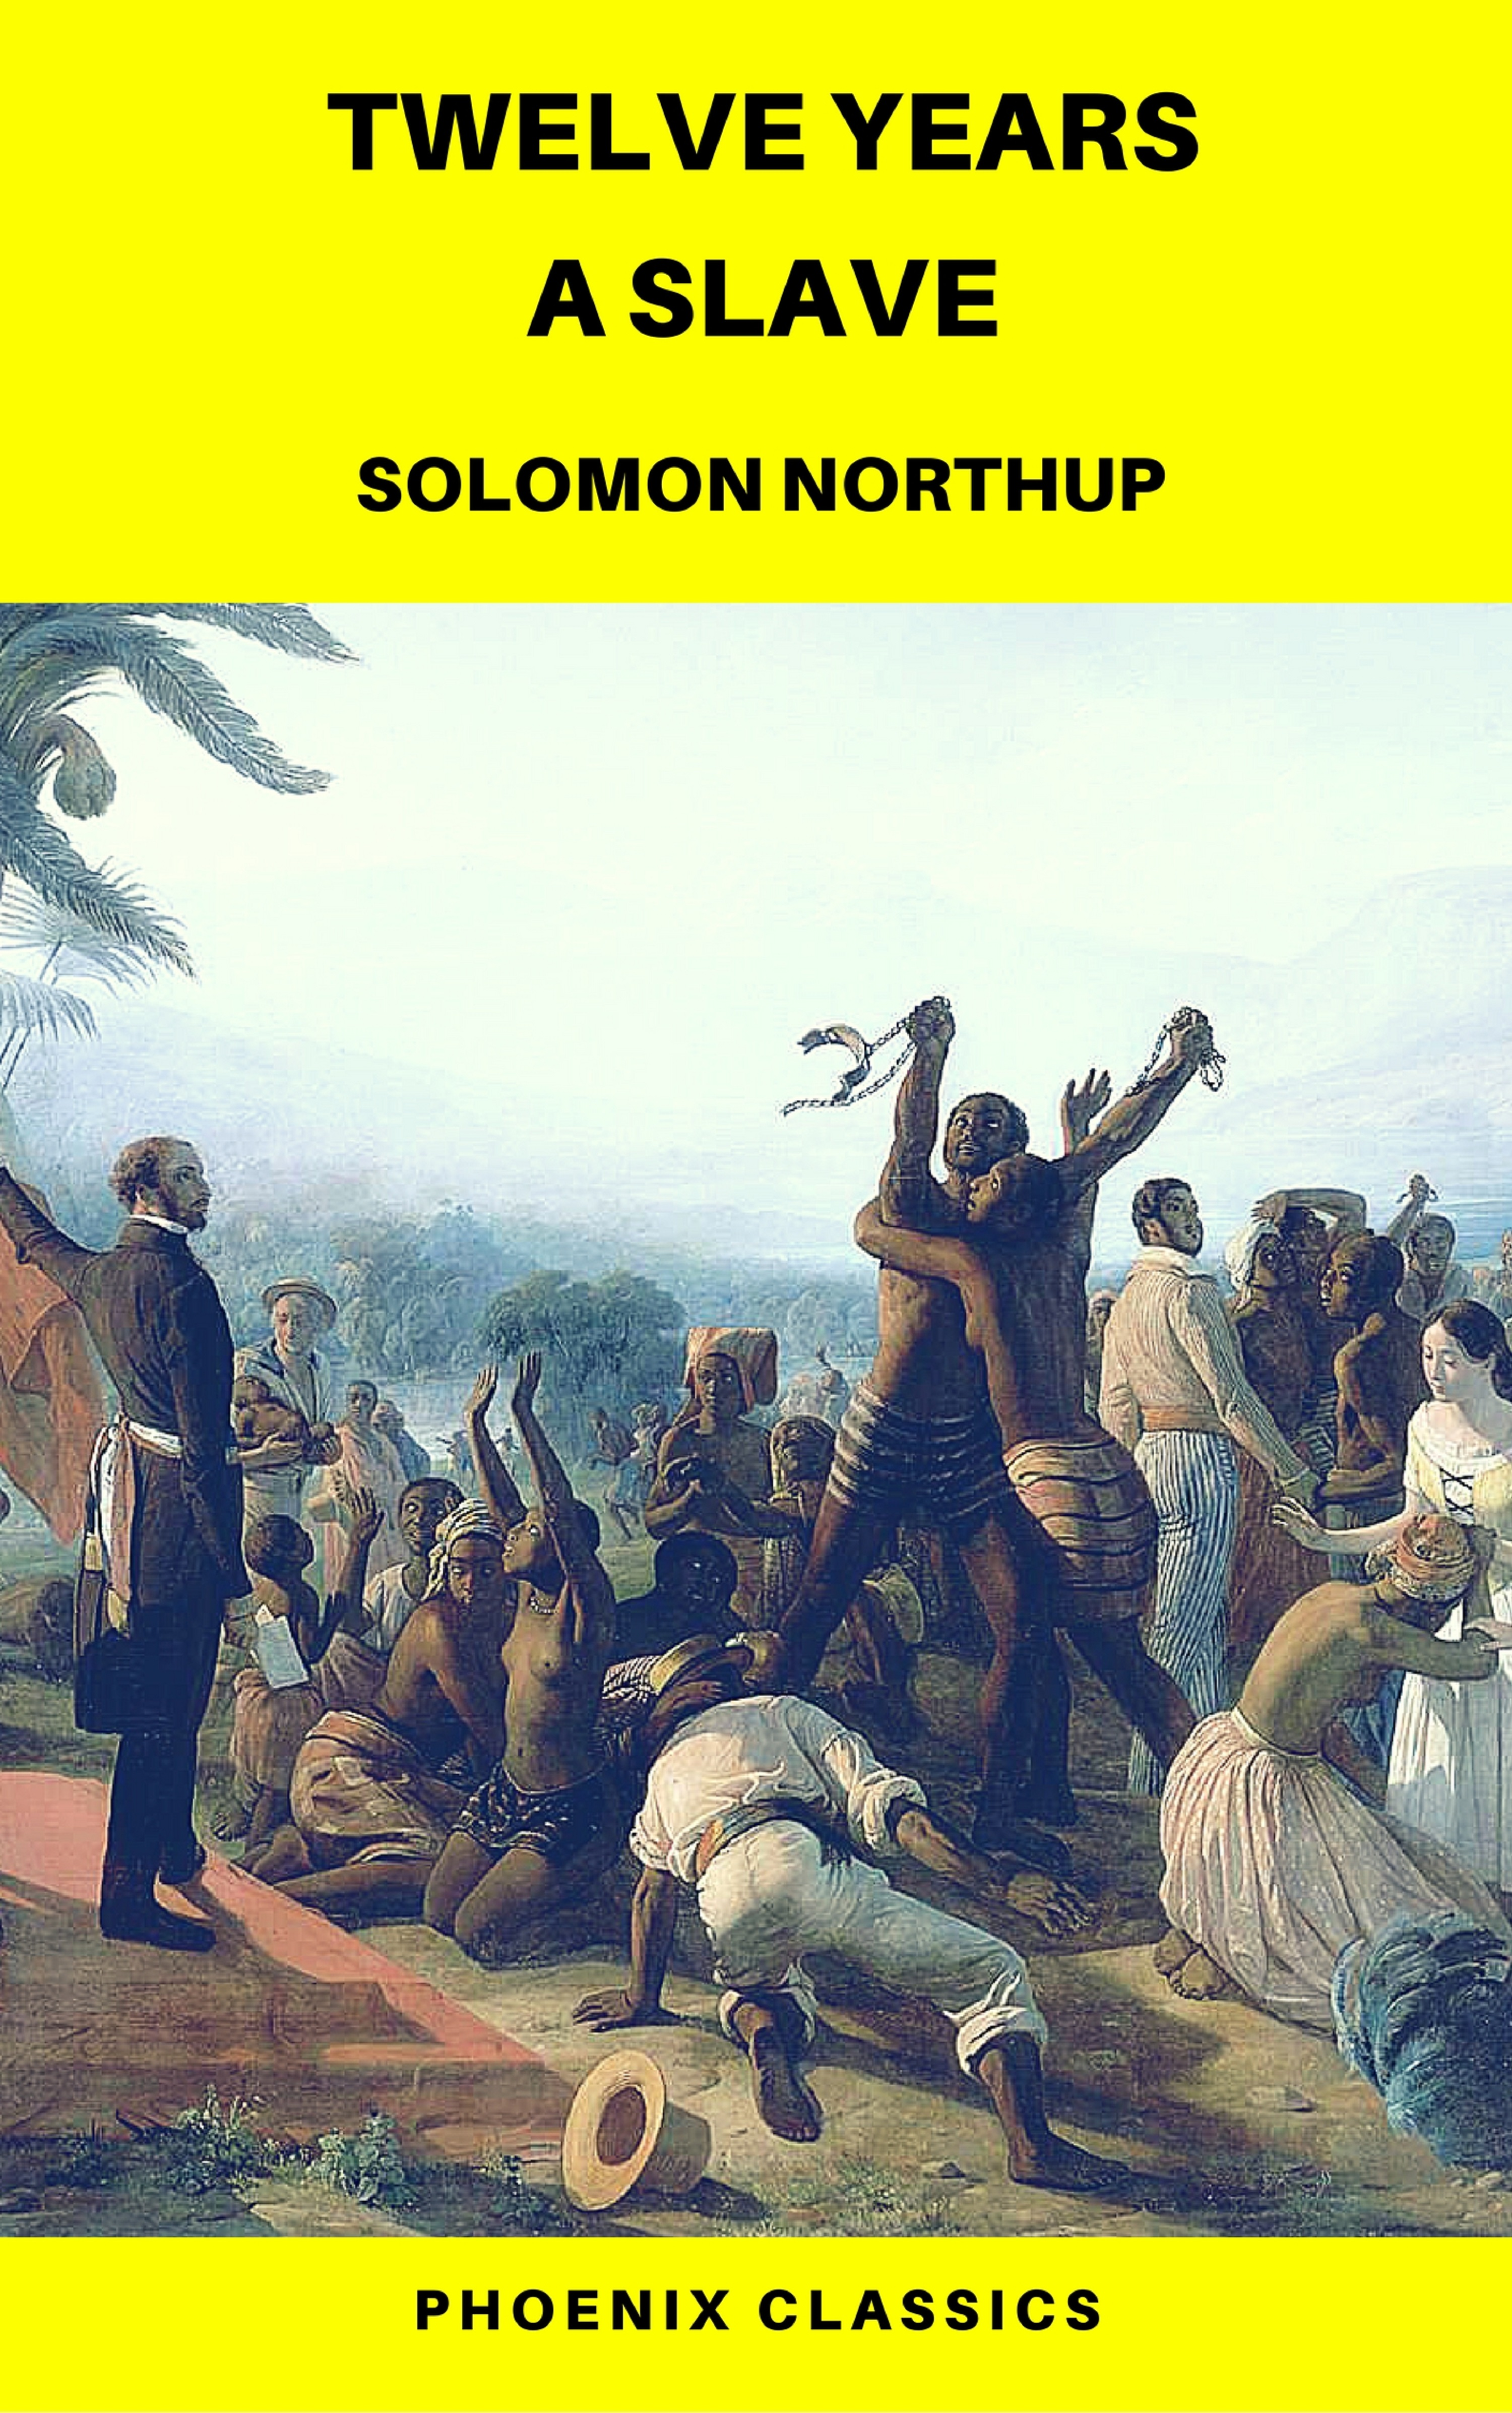 Solomon Northup Twelve Years a Slave (Phoenix Classics) northup s 12 years a slave isbn 9785521054497